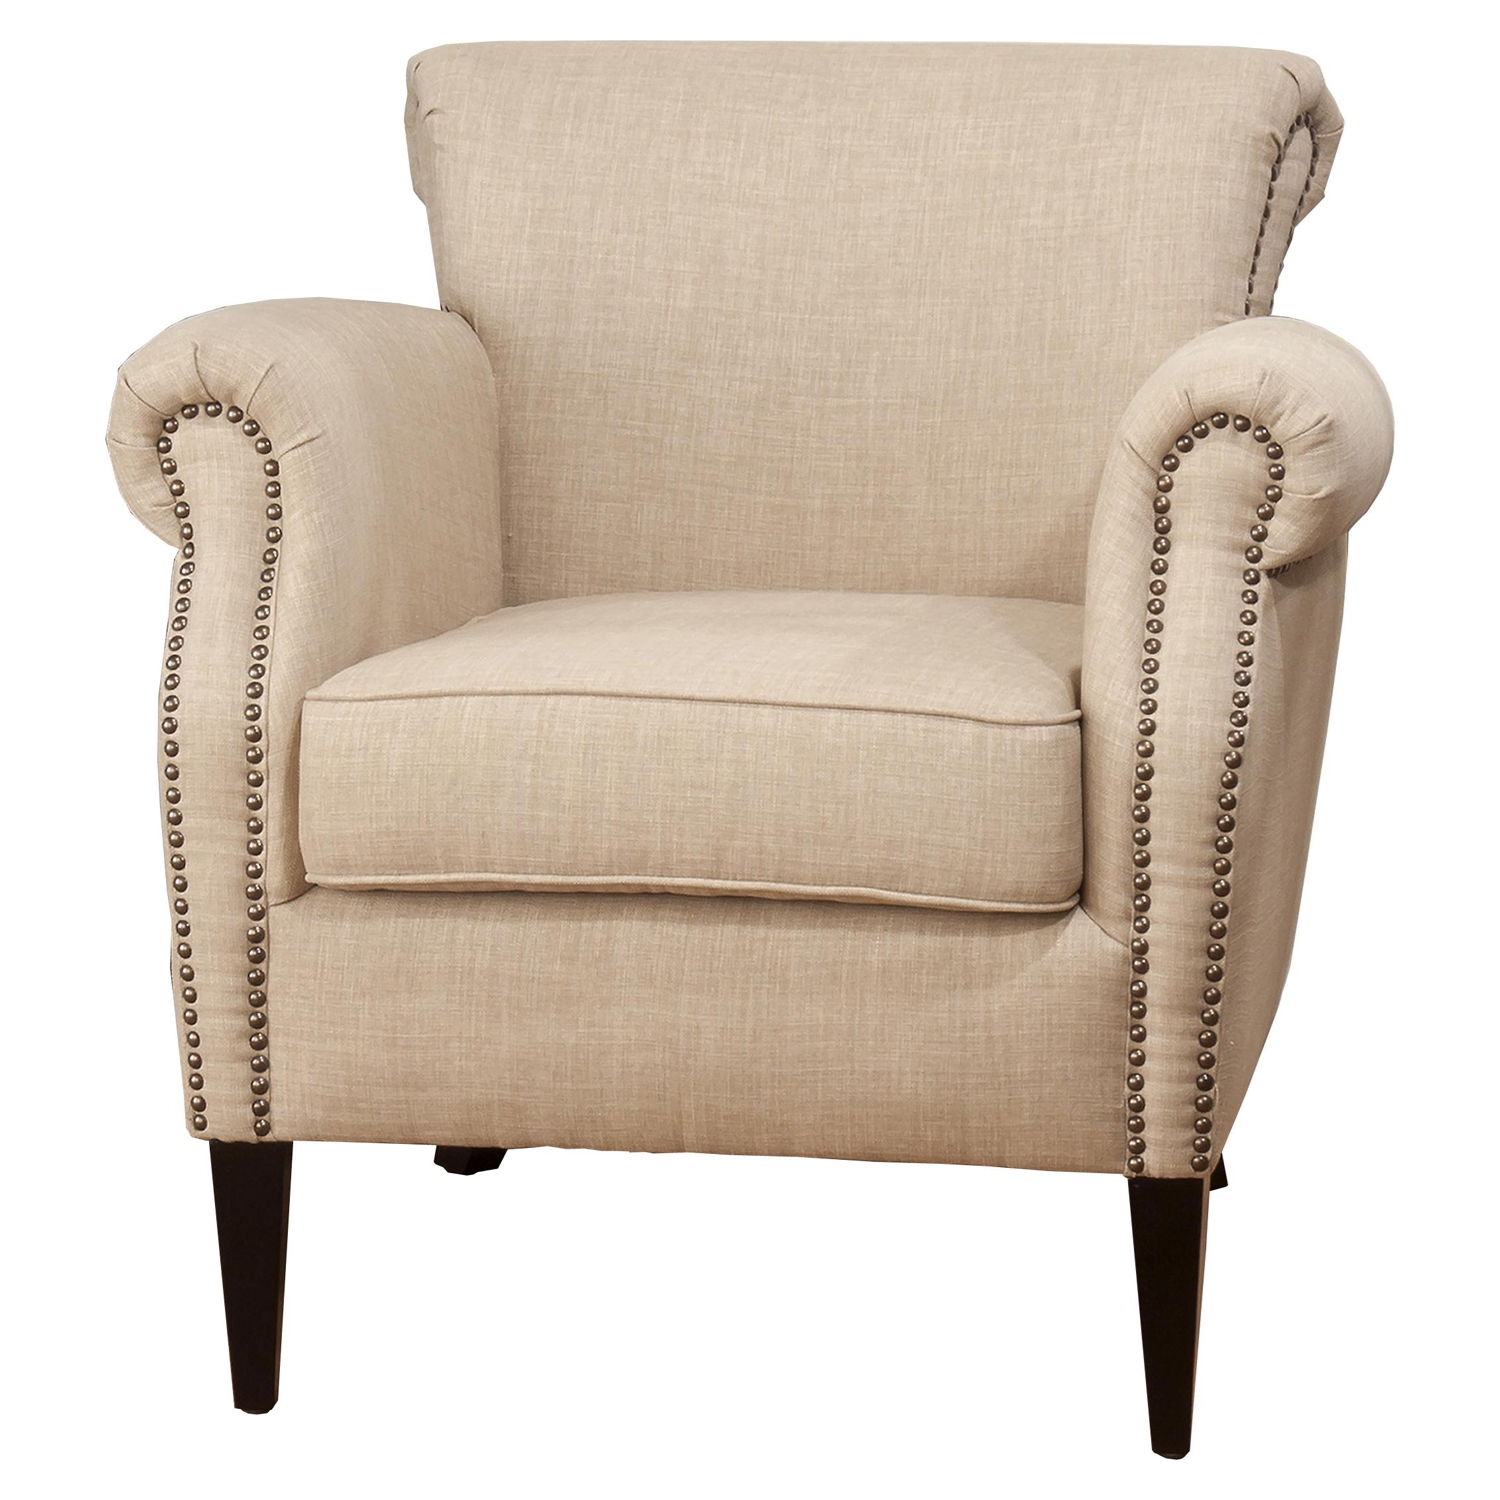 Emma Nailhead Club Chair - Wheat - JOFR-EMMA-CH-WHEAT